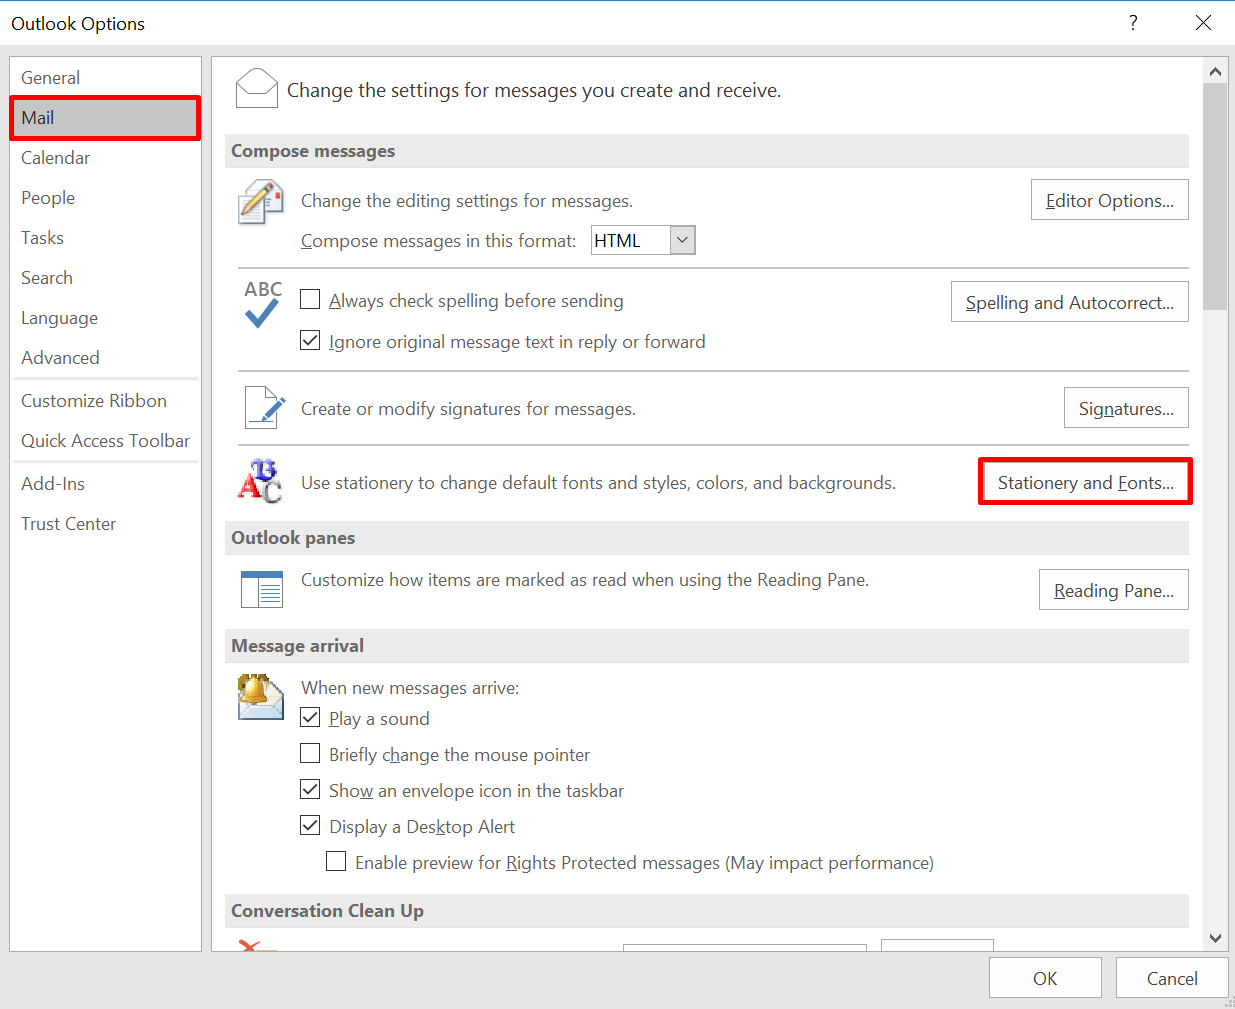 how to change the background in outlook 2016